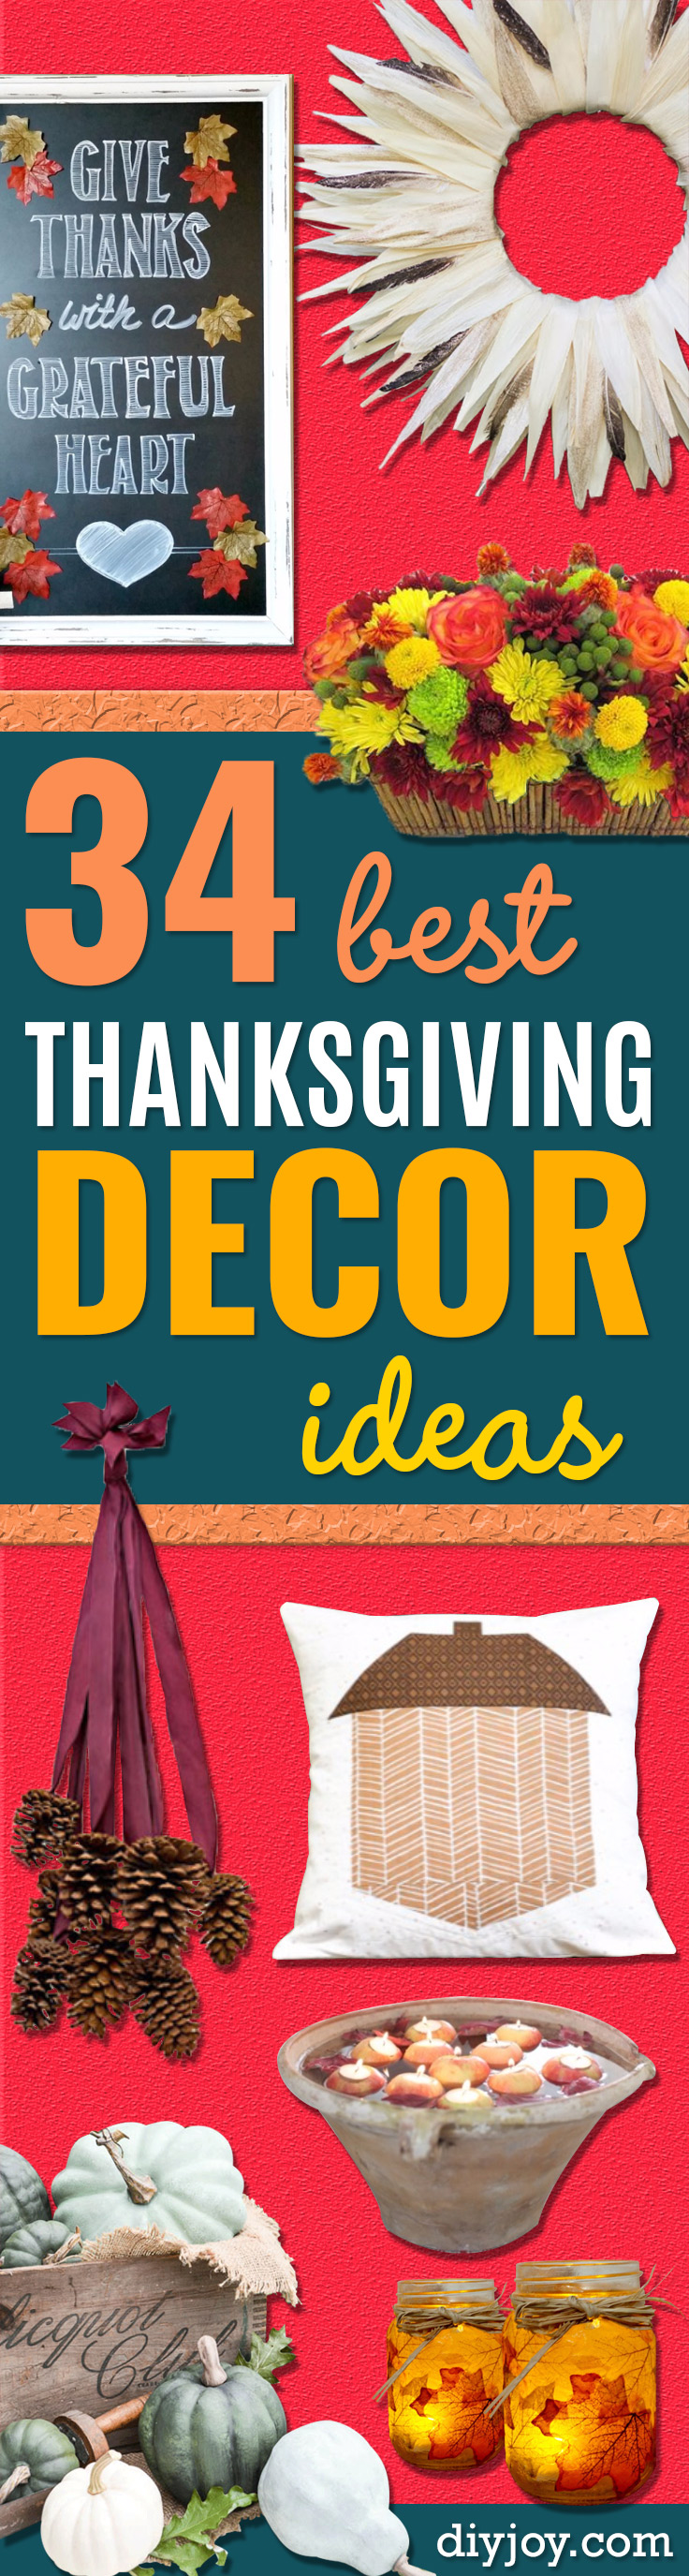 DIY Thanksgiving Decor Ideas - Fall Projects and Crafts for Thanksgiving Dinner Centerpieces, Vases, Arrangements With Leaves and Pumpkins - Easy and Cheap Crafts to Make for Home Decor http://diyjoy.com/diy-thanksgiving-decor-ideas